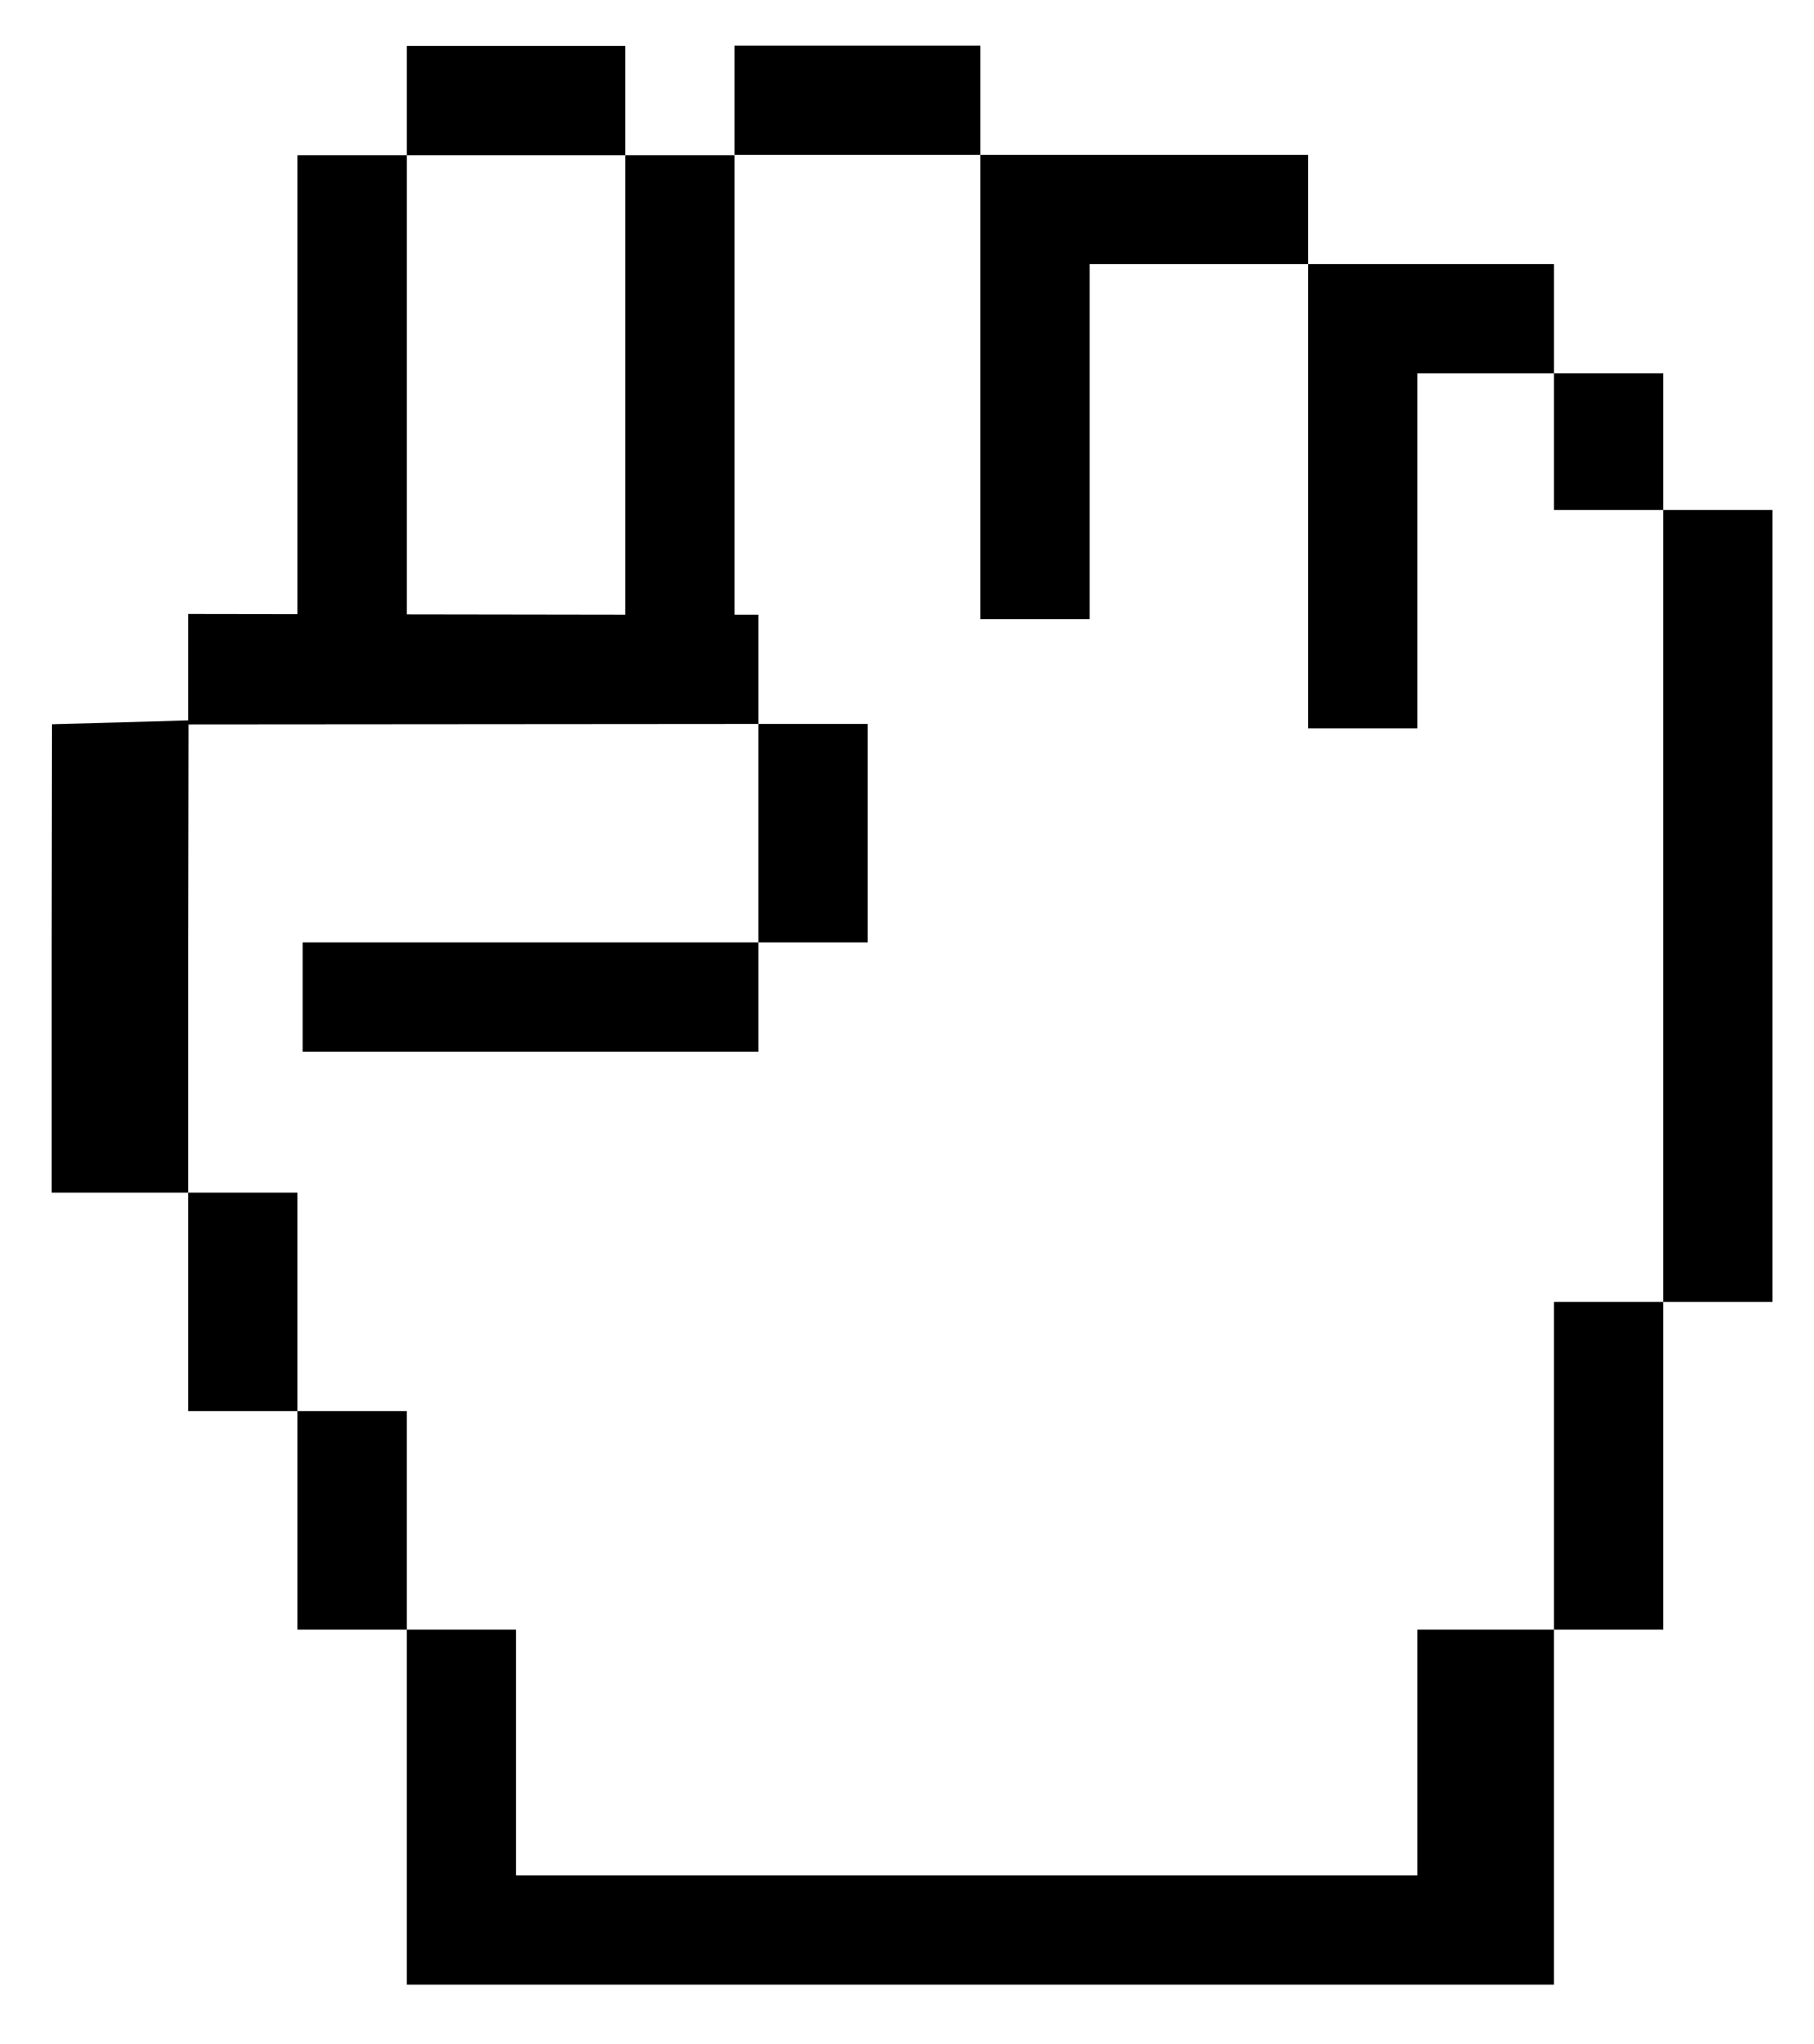 mouse pointer fist by worker